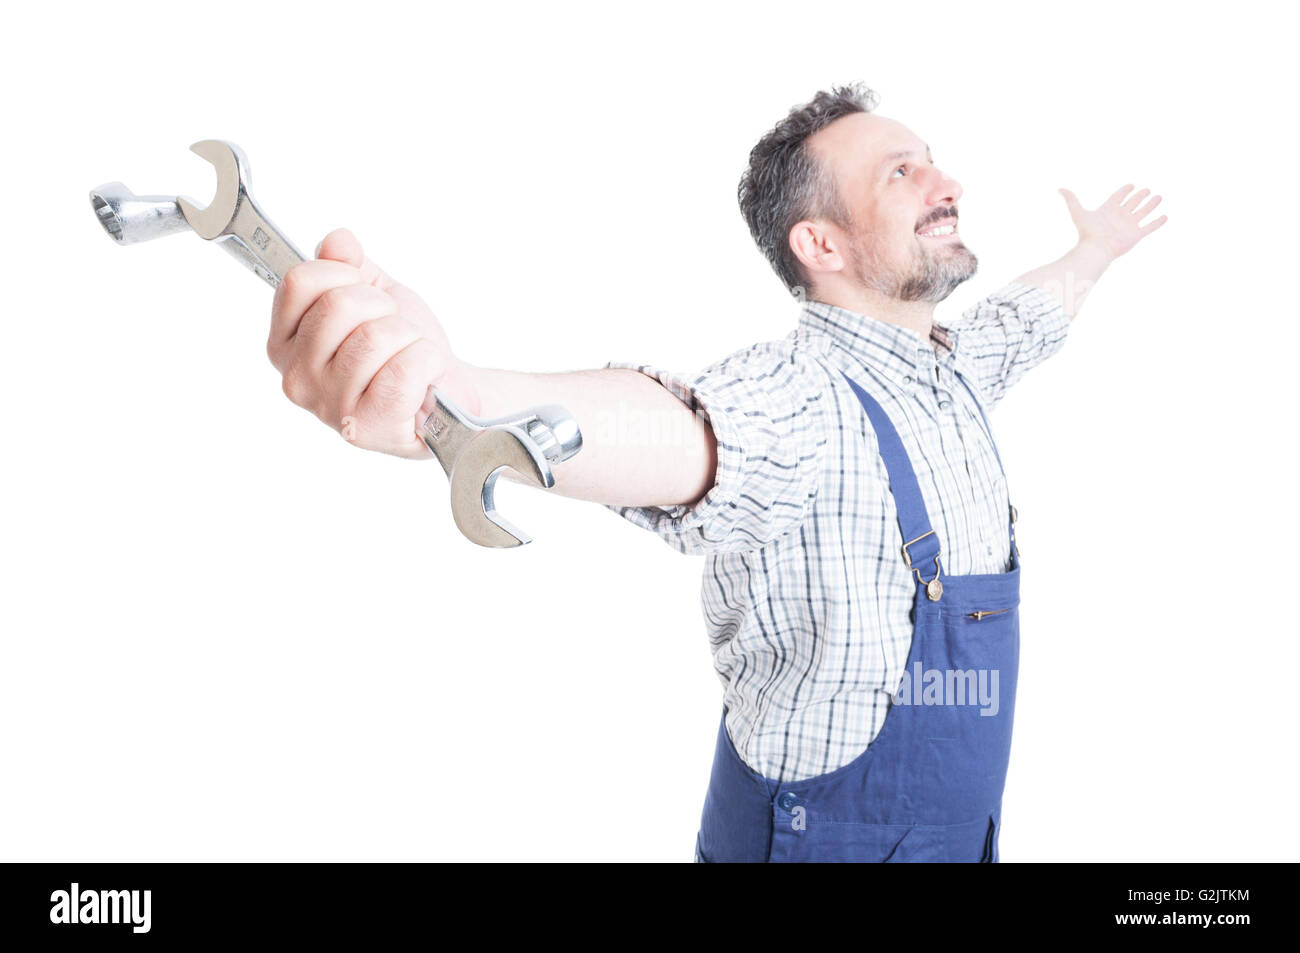 Positive feelings with happy mechanic enjoying his achievement as freedom concept isolated on white background - Stock Image